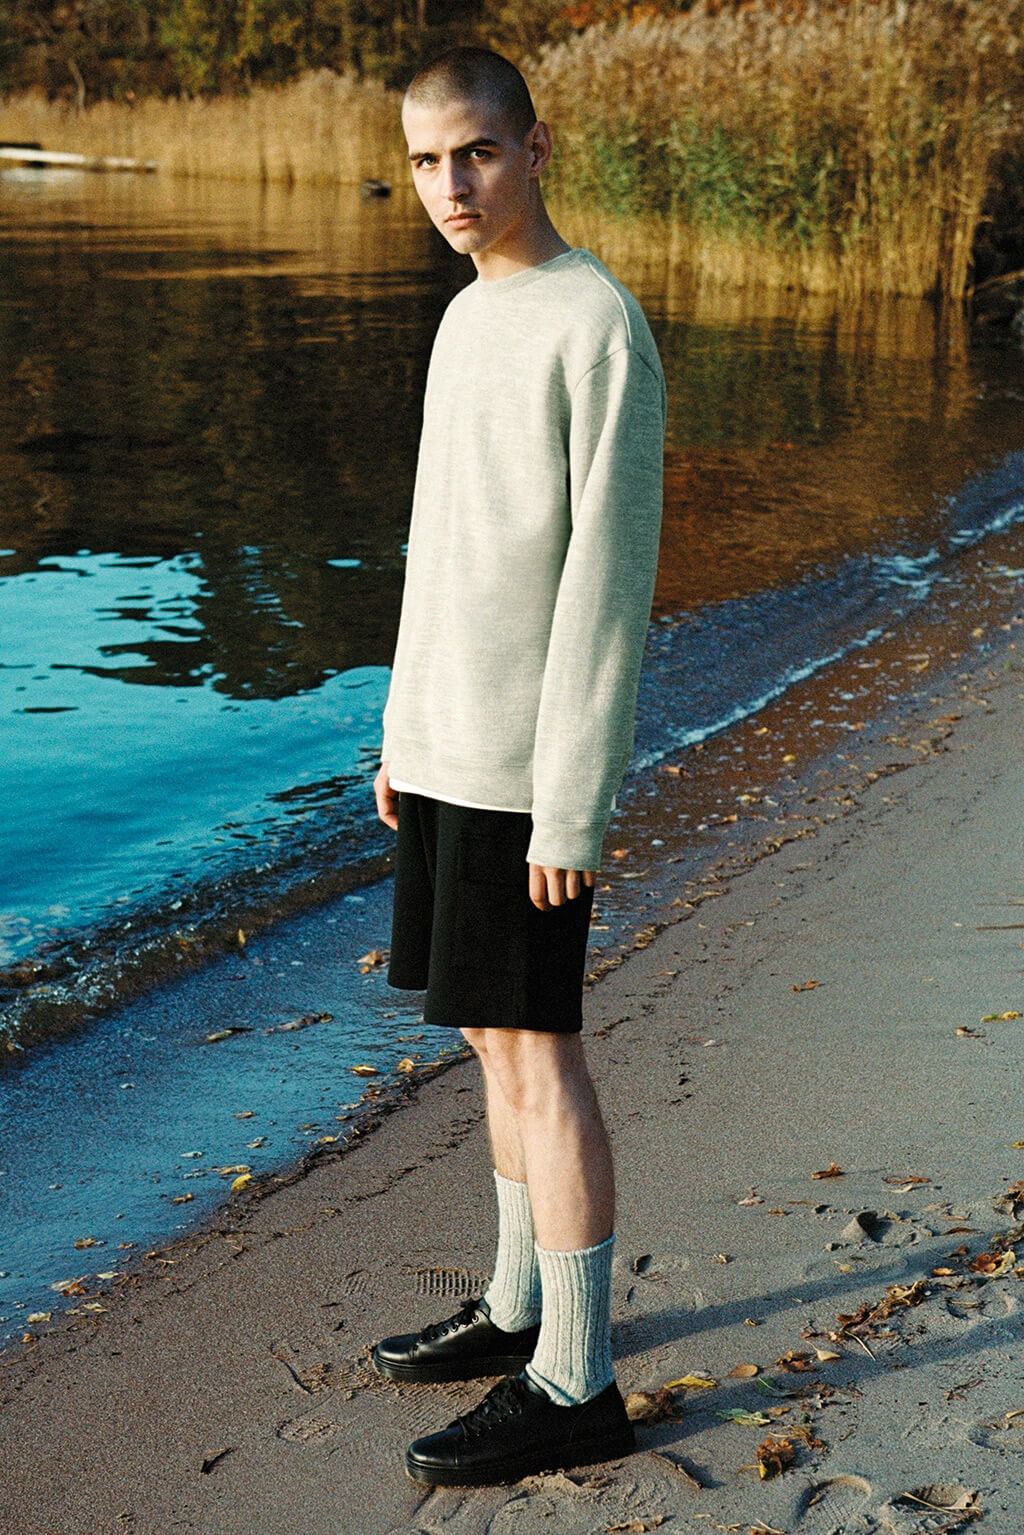 A man with a shaved head of white Swedish descent, wearing a grey sweatshirt, looks into the camera whilst standing on a beach. He is wearing shorts, woollen socks and black shoes